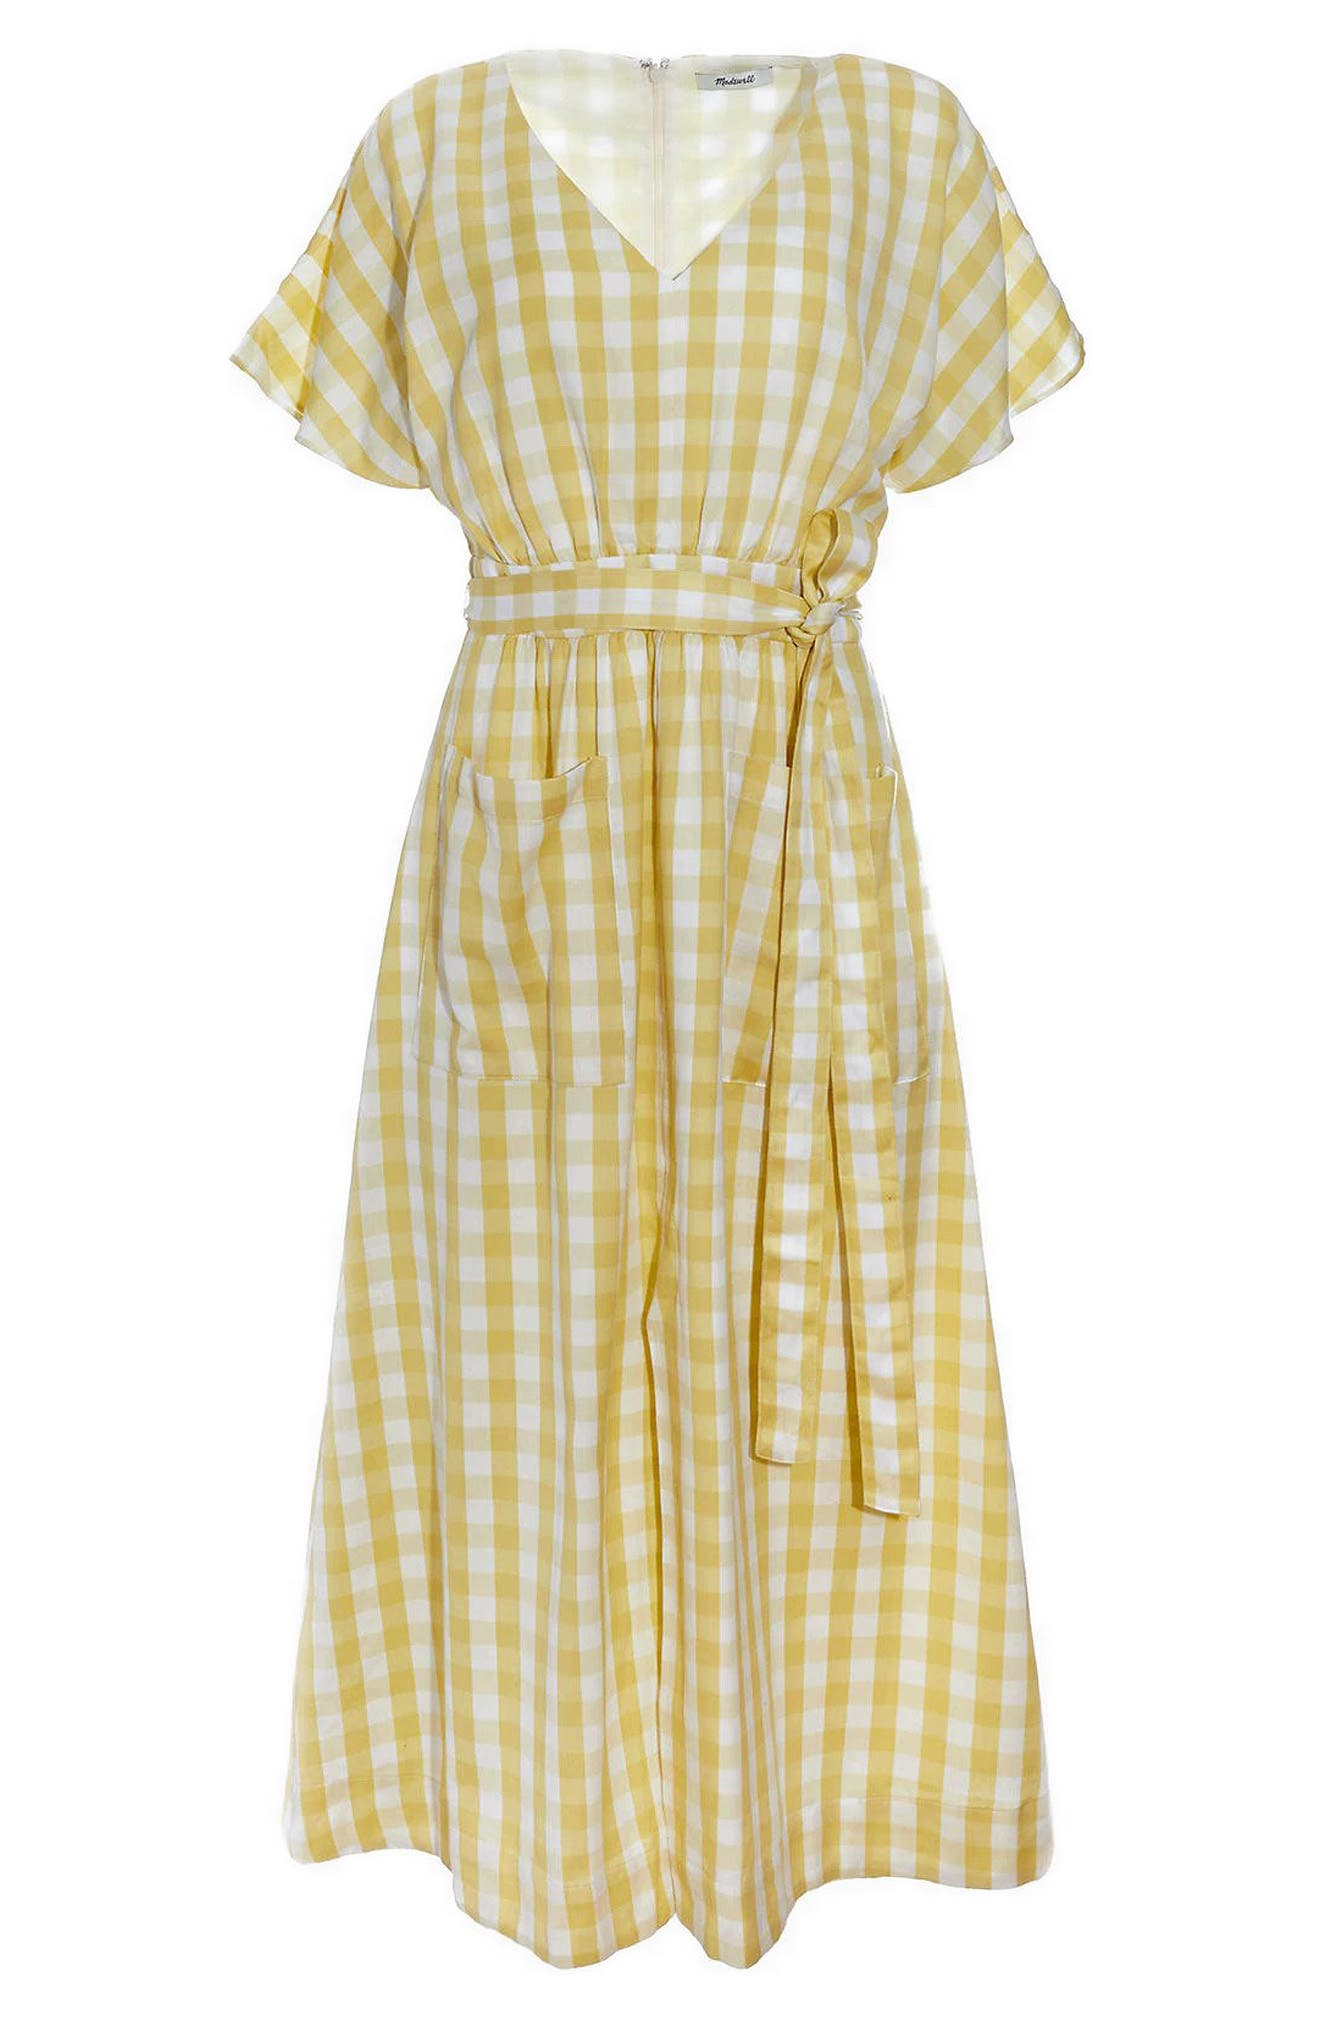 1920s Downton Abbey Dresses Womens Madewell Gingham Check Dolman Sleeve Tie Waist Midi Dress $82.80 AT vintagedancer.com